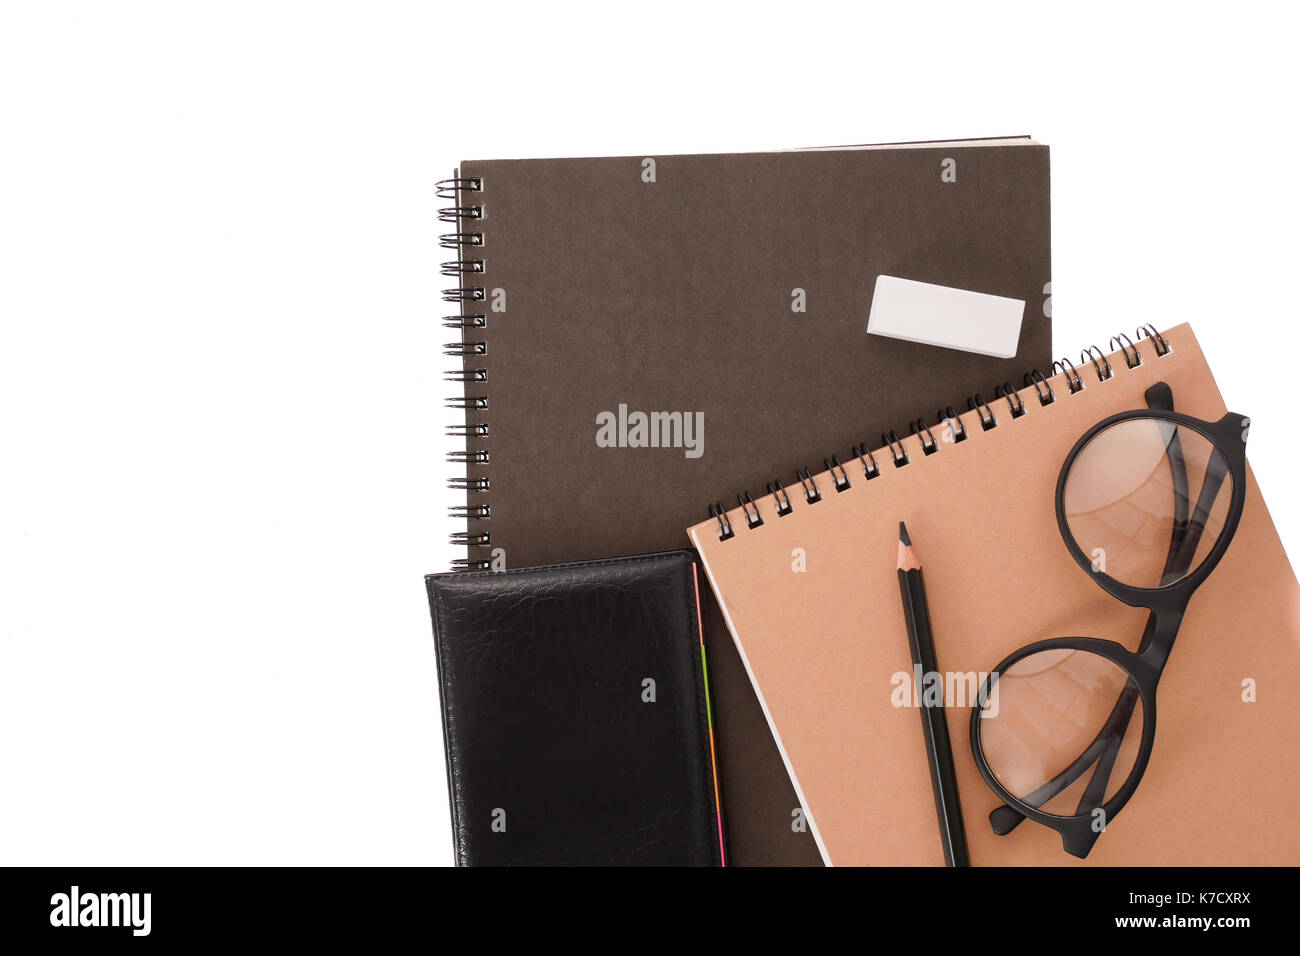 Black Book Cover Backgrounds : Black book cover white background stock photos